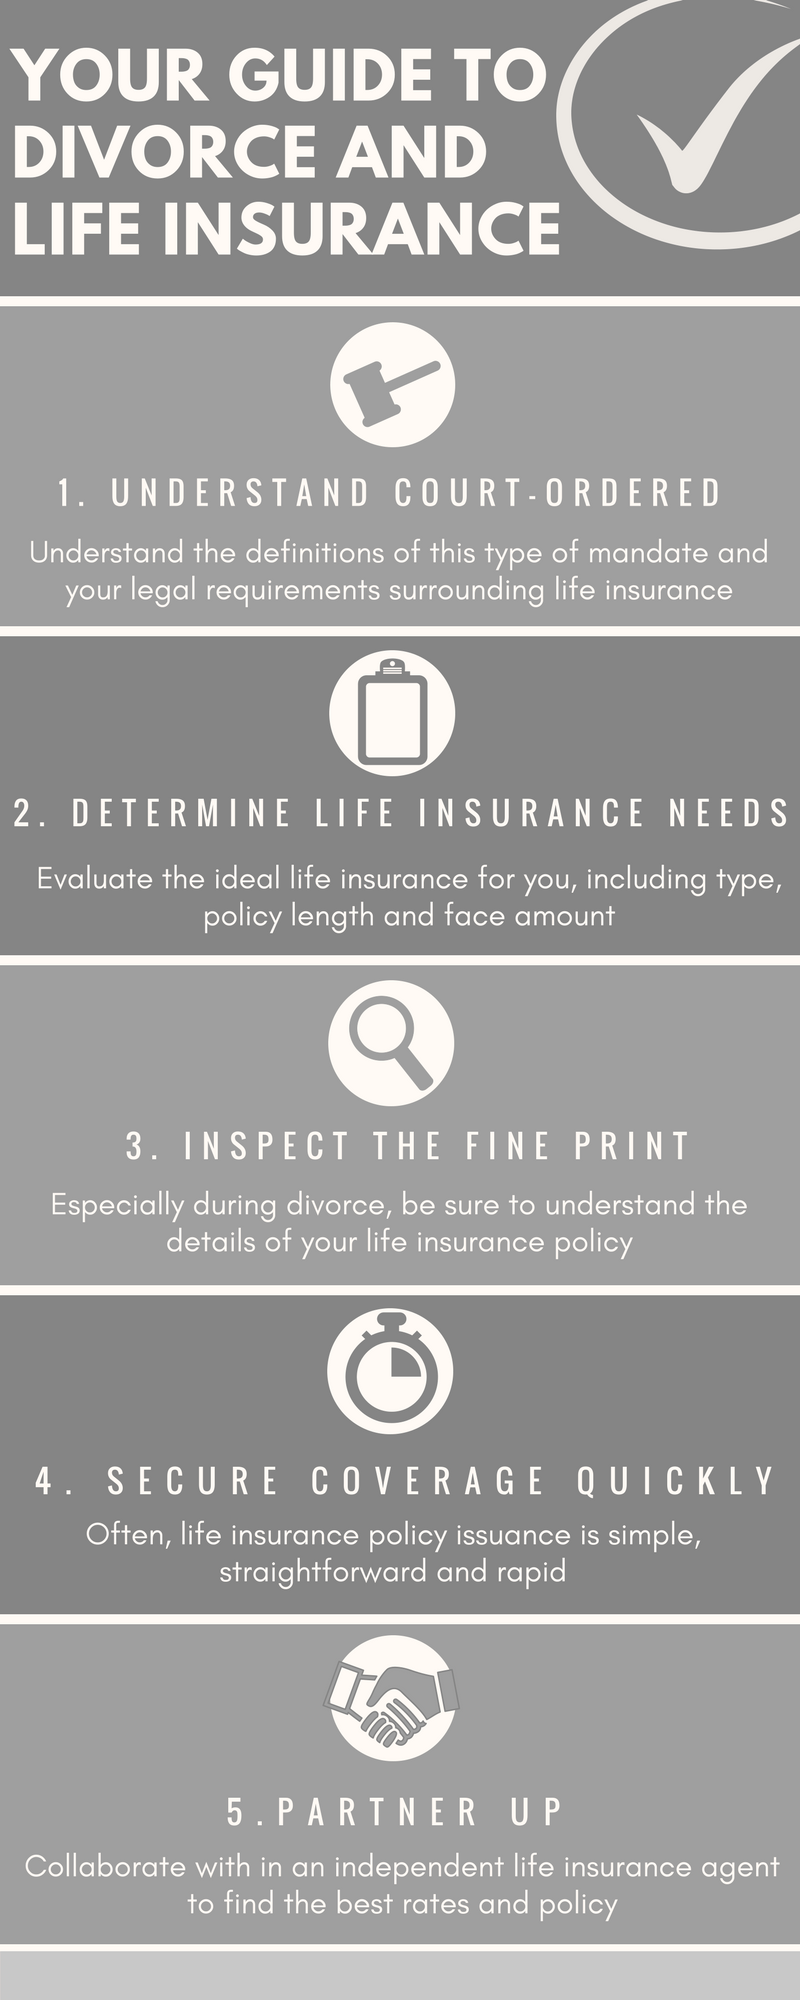 5 steps and a guide to understanding divorce and life insurance